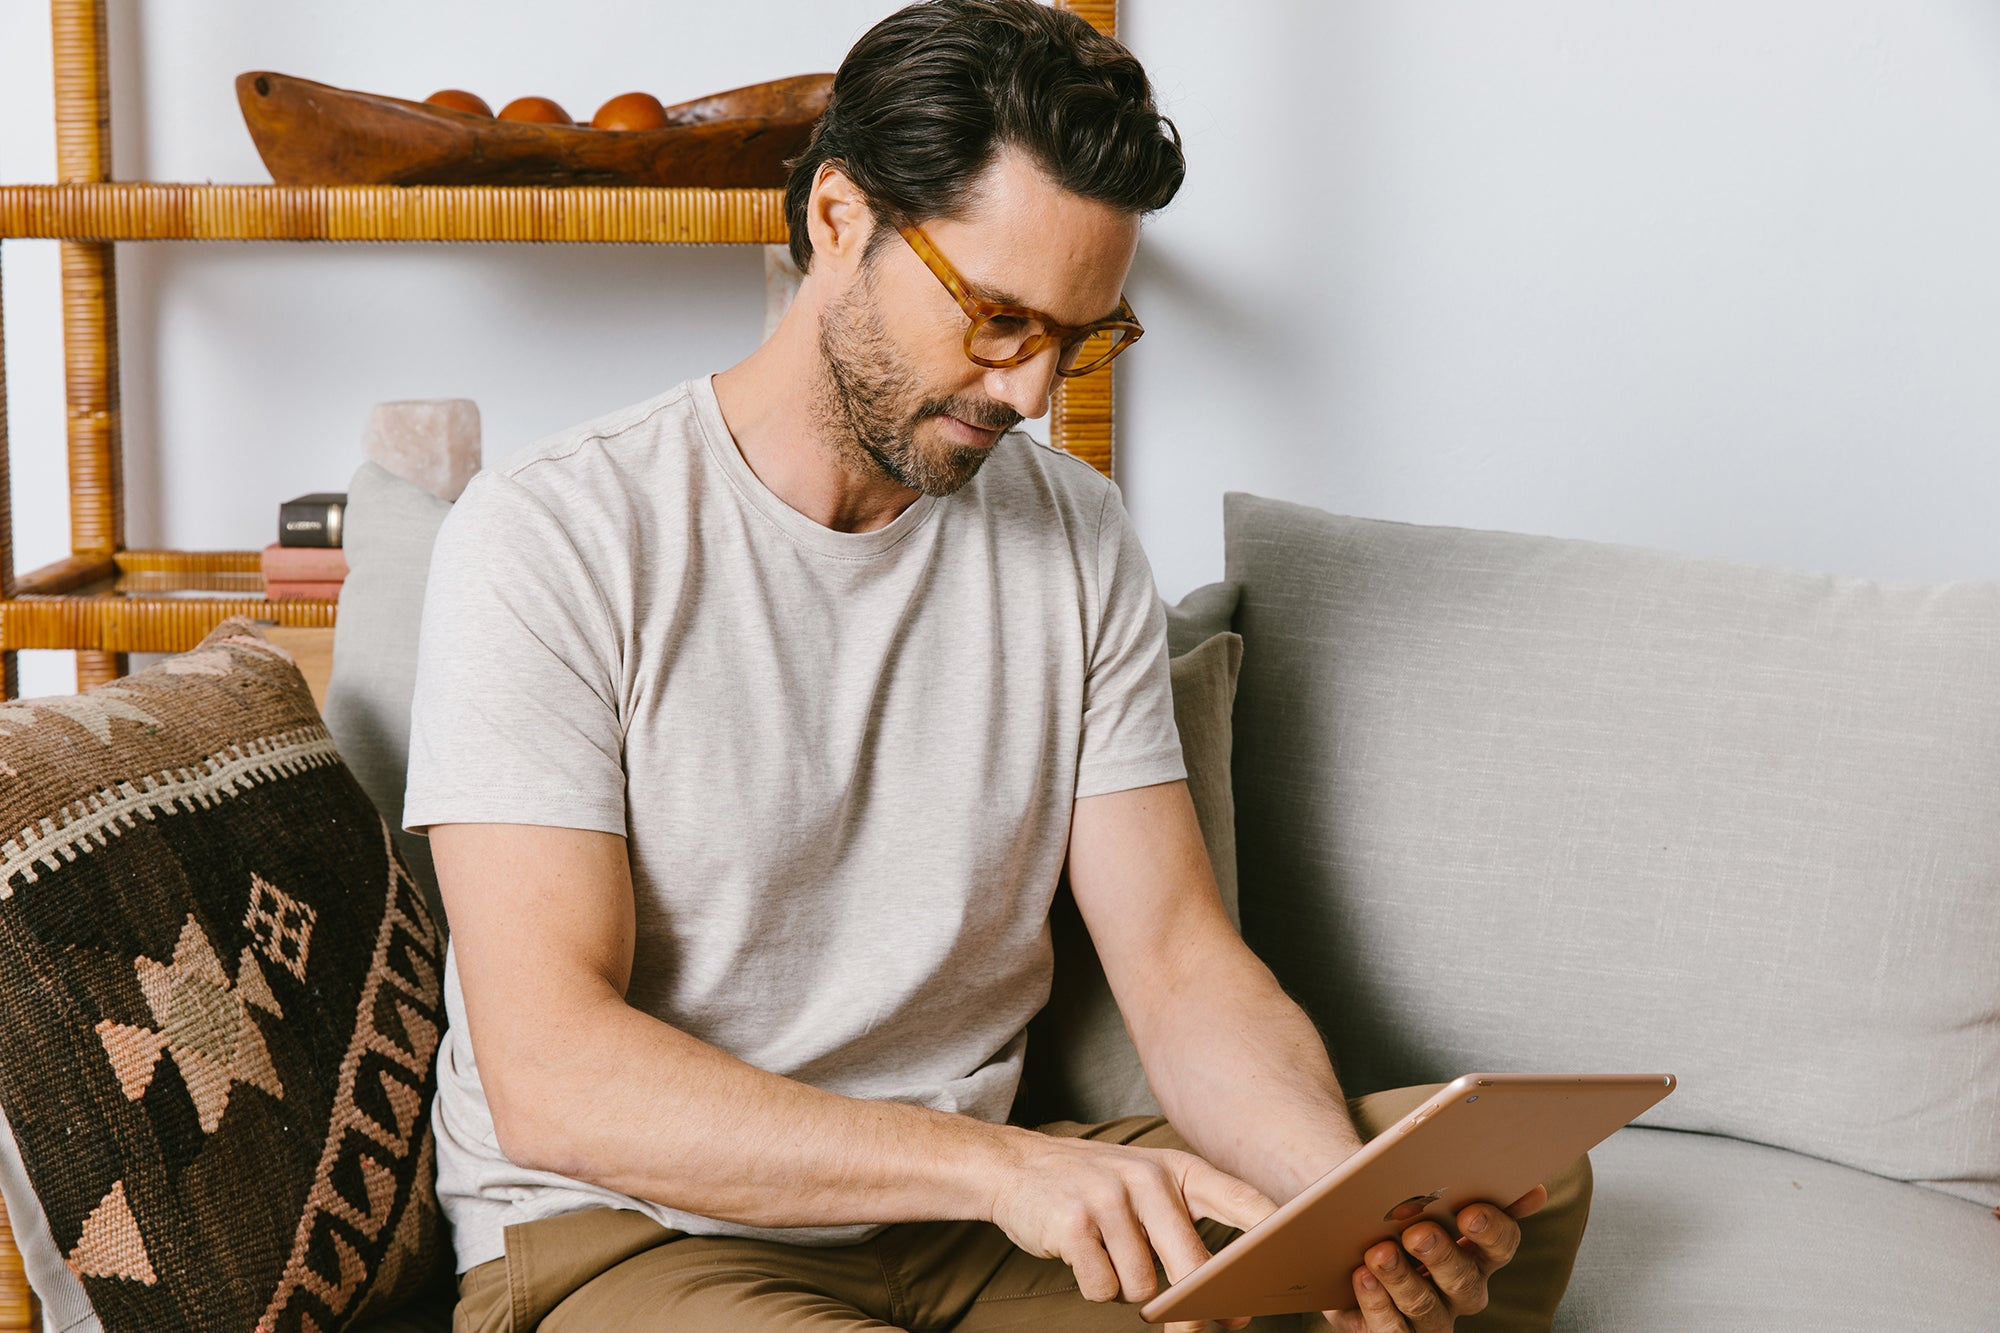 Man wearing Peepers blue light reading glasses while working on a tablet